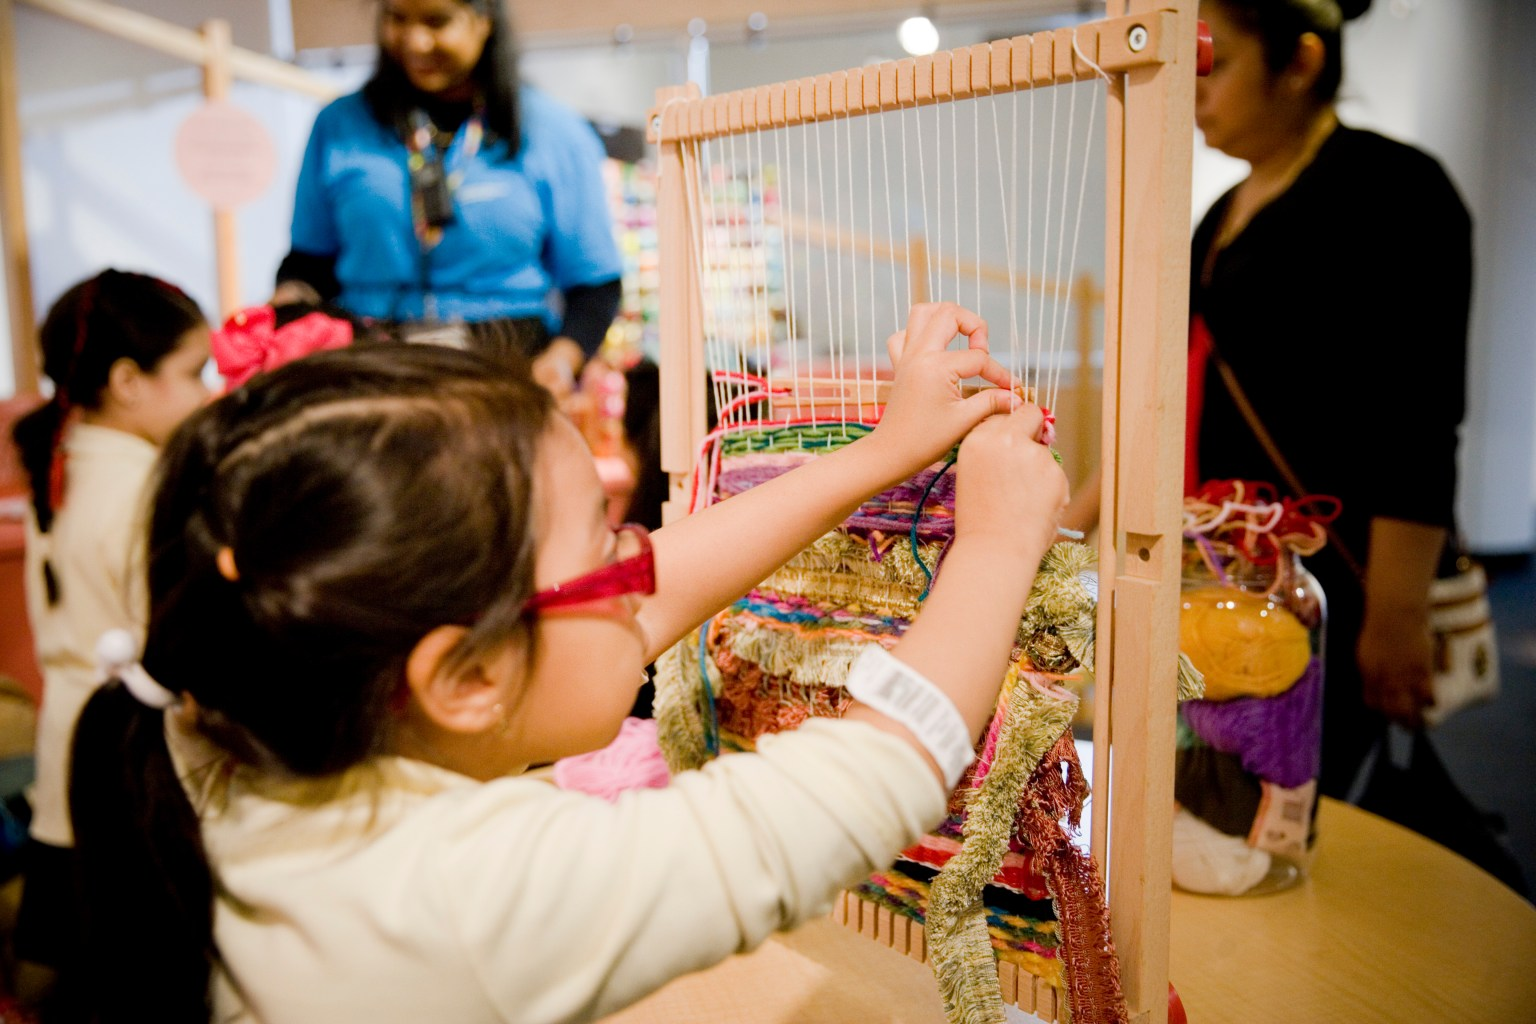 A young child experiments with weaving in a museum space.